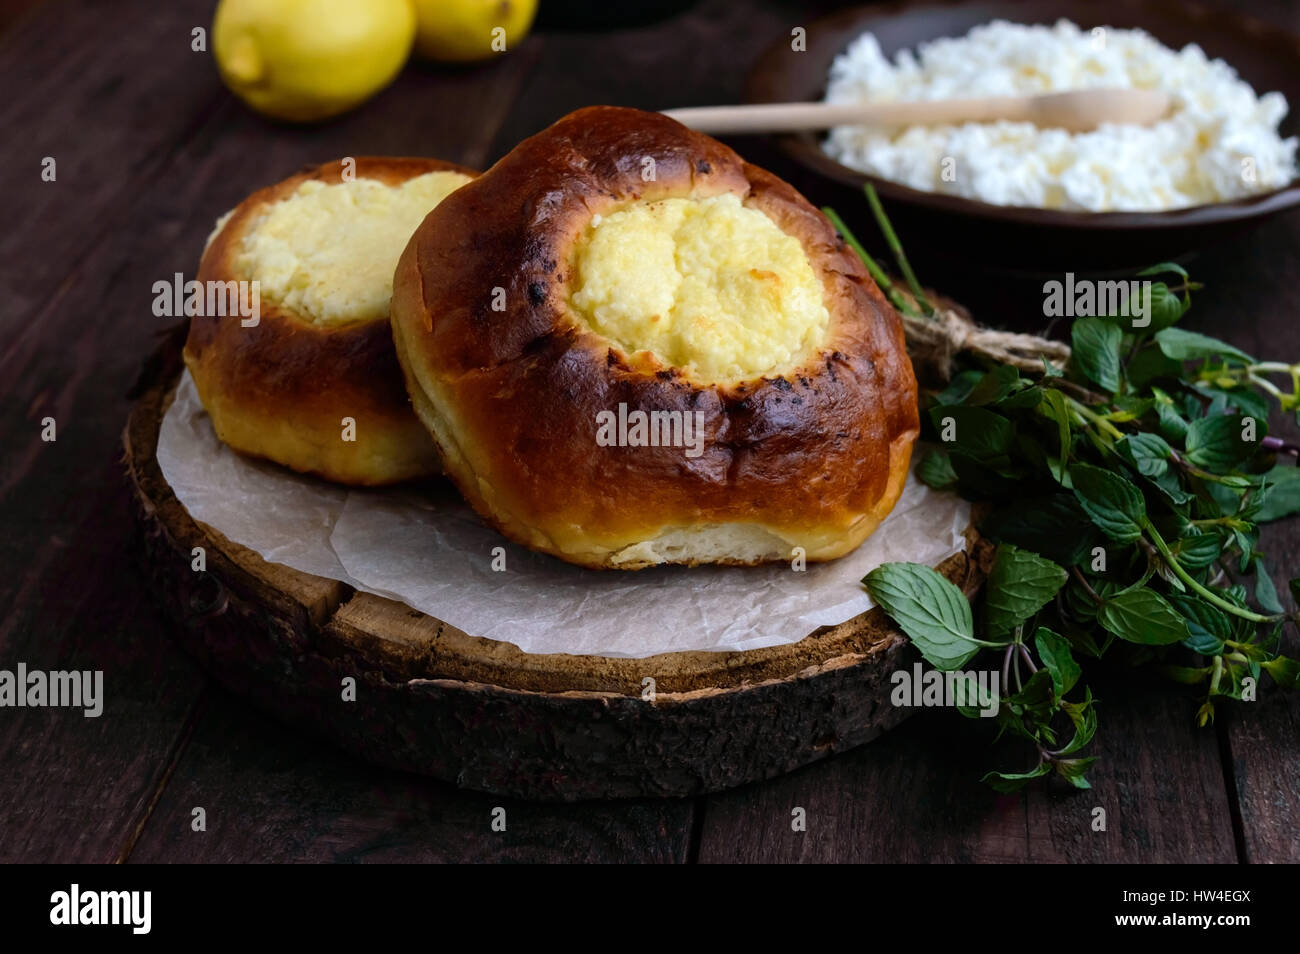 Vanilla cottage cheese buns (cheesecake) on dark wooden background. - Stock Image